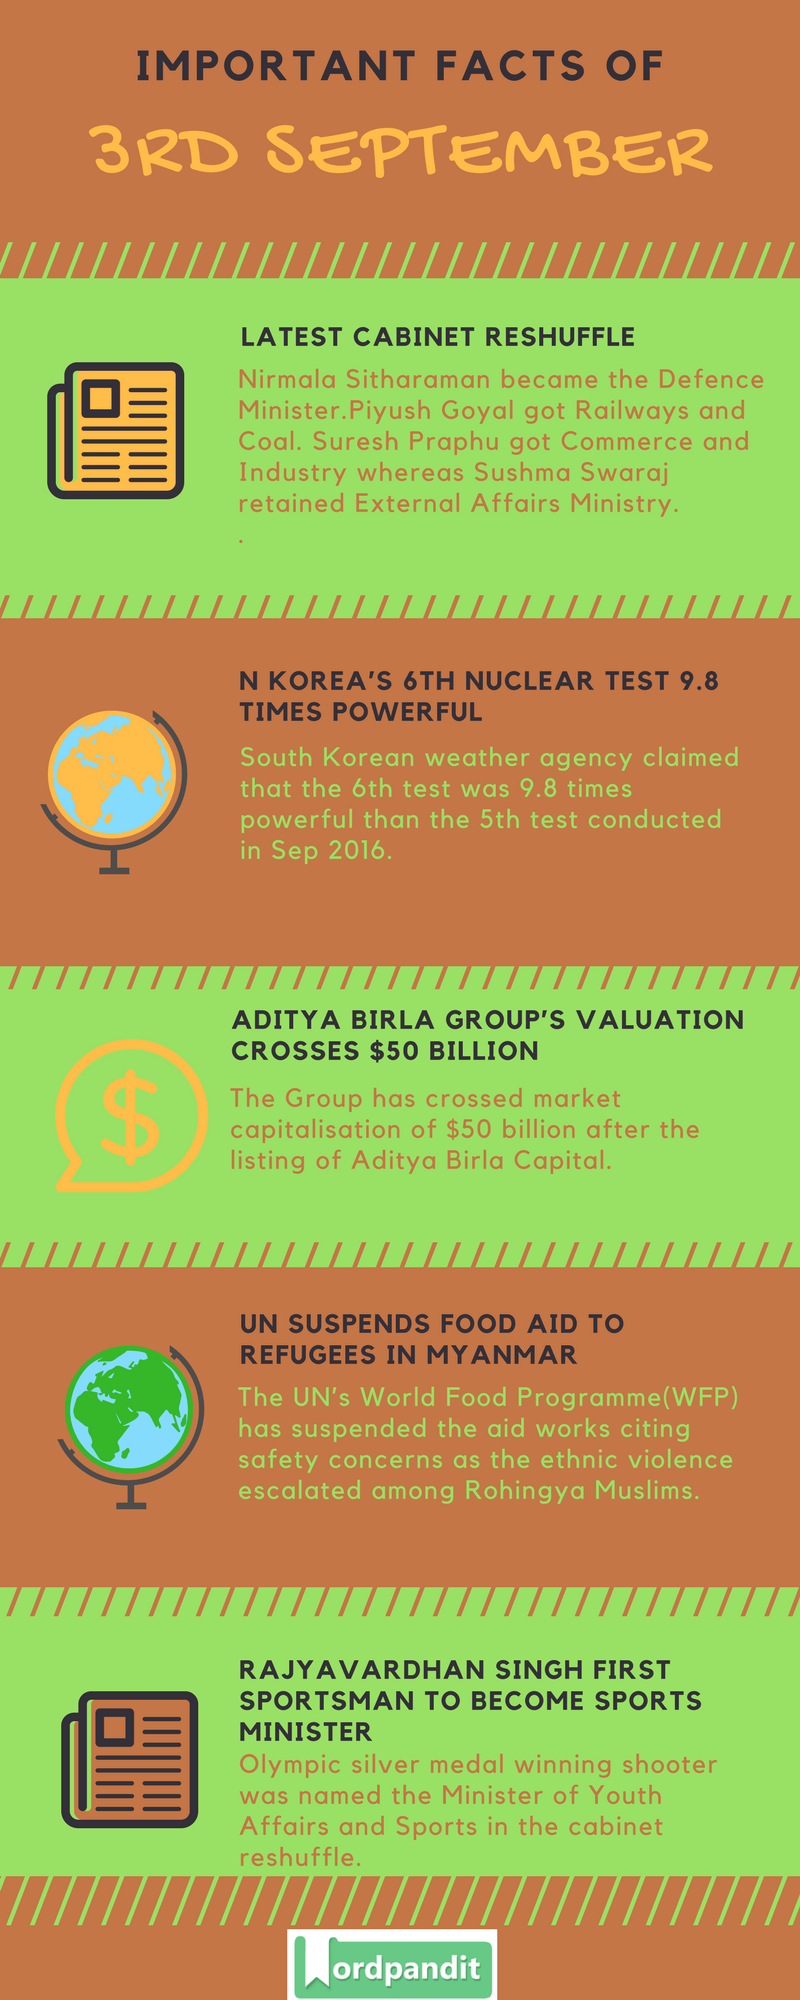 Daily-Current-Affairs-3-september-2017-Current-Affairs-Quiz-september-3-2017-Current-Affairs-Infographic